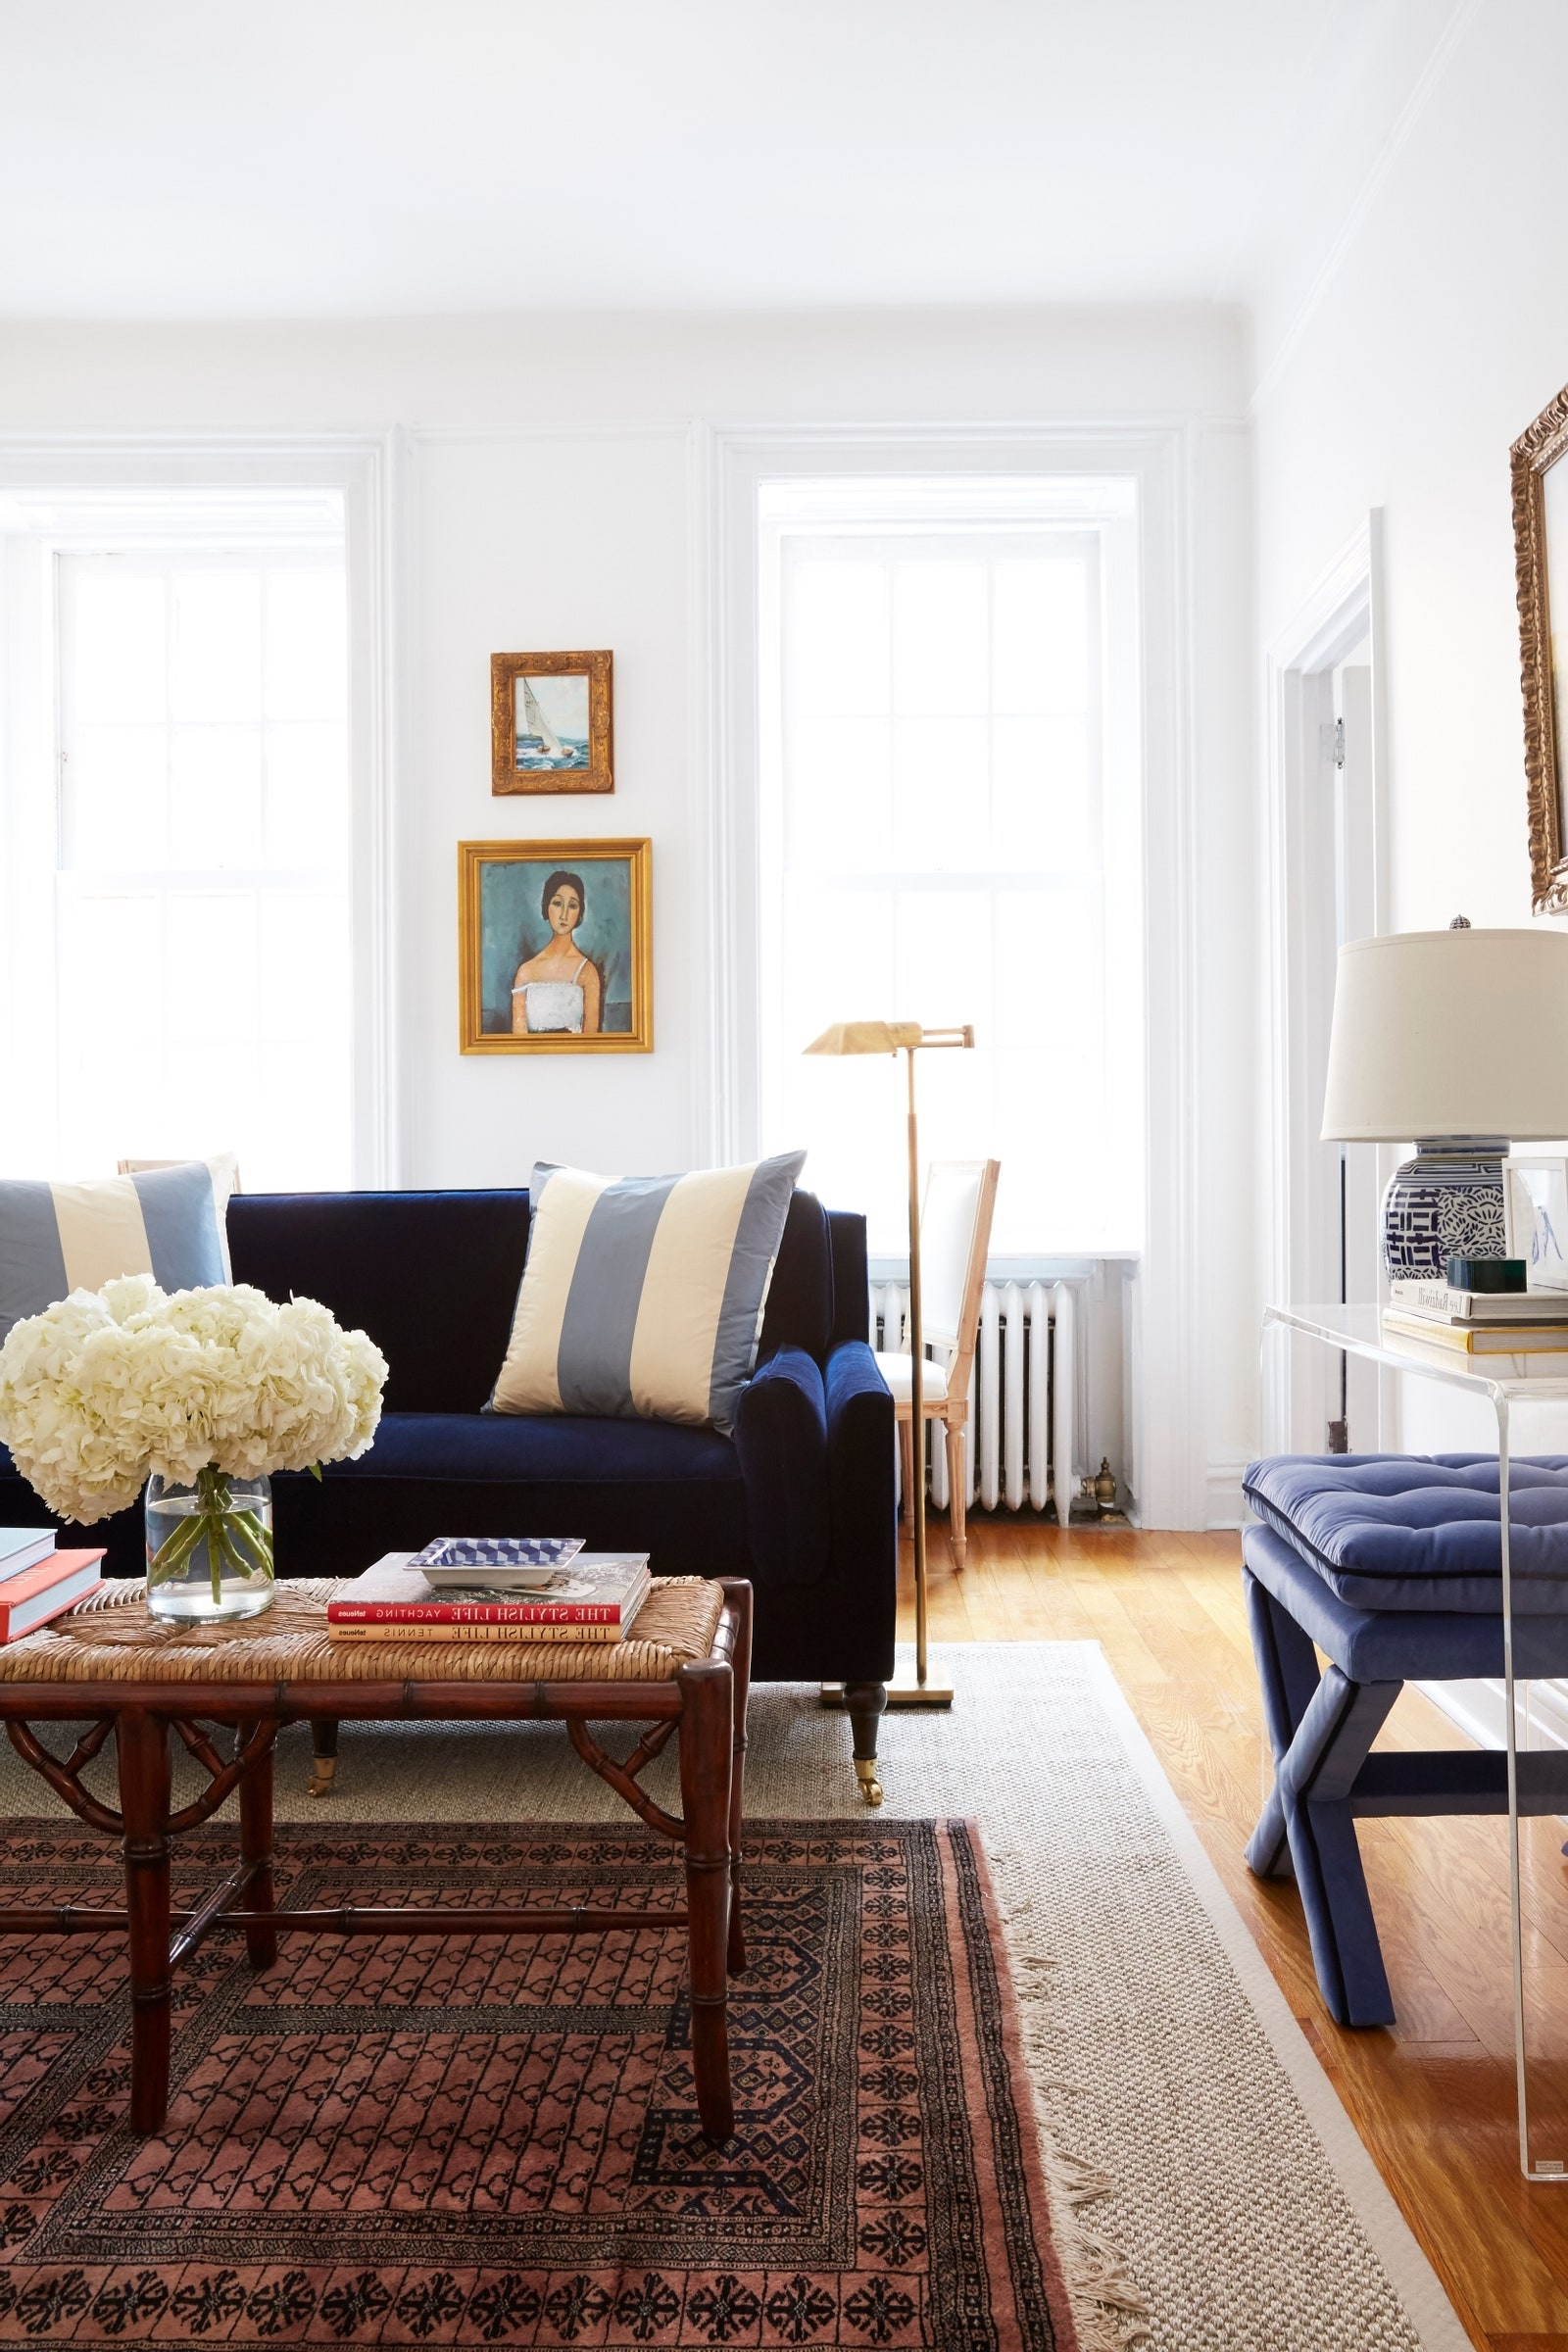 8 Small Living Room Ideas That Will Maximize Your Space 20+ 14X12 Living Room Inspirations